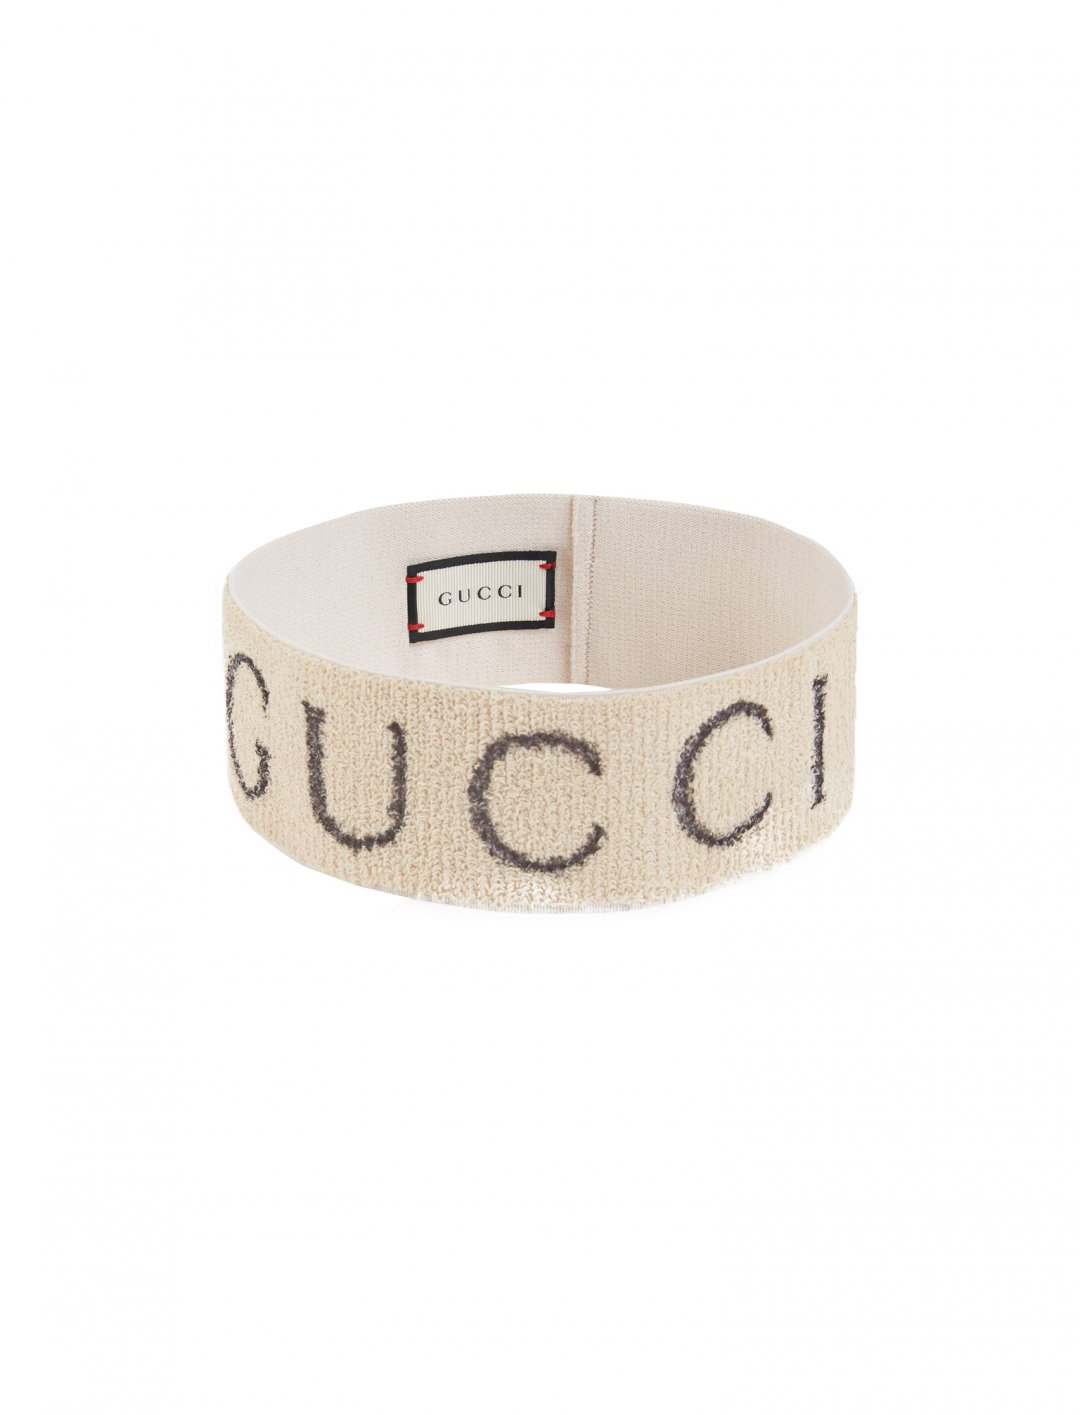 "One Acen's Vintage Logo Headband {""id"":16,""product_section_id"":1,""name"":""Accessories"",""order"":15} Gucci"